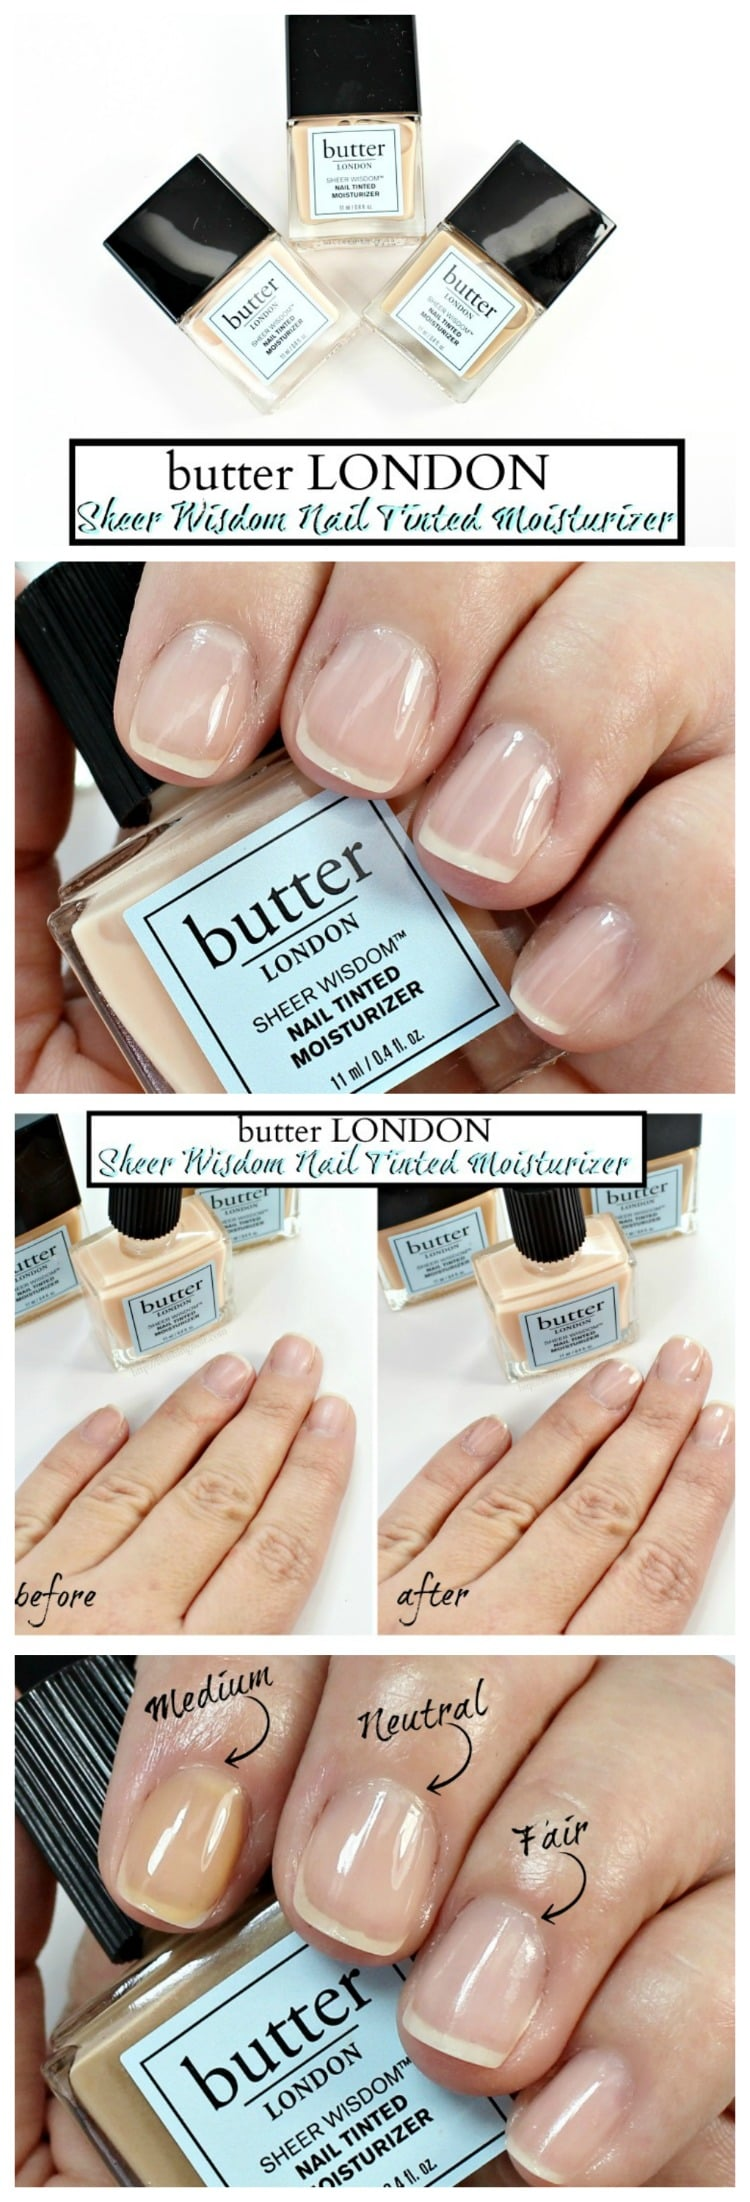 Butter London Sheer Wisdom Nail Tinted Moisturizer Swatches